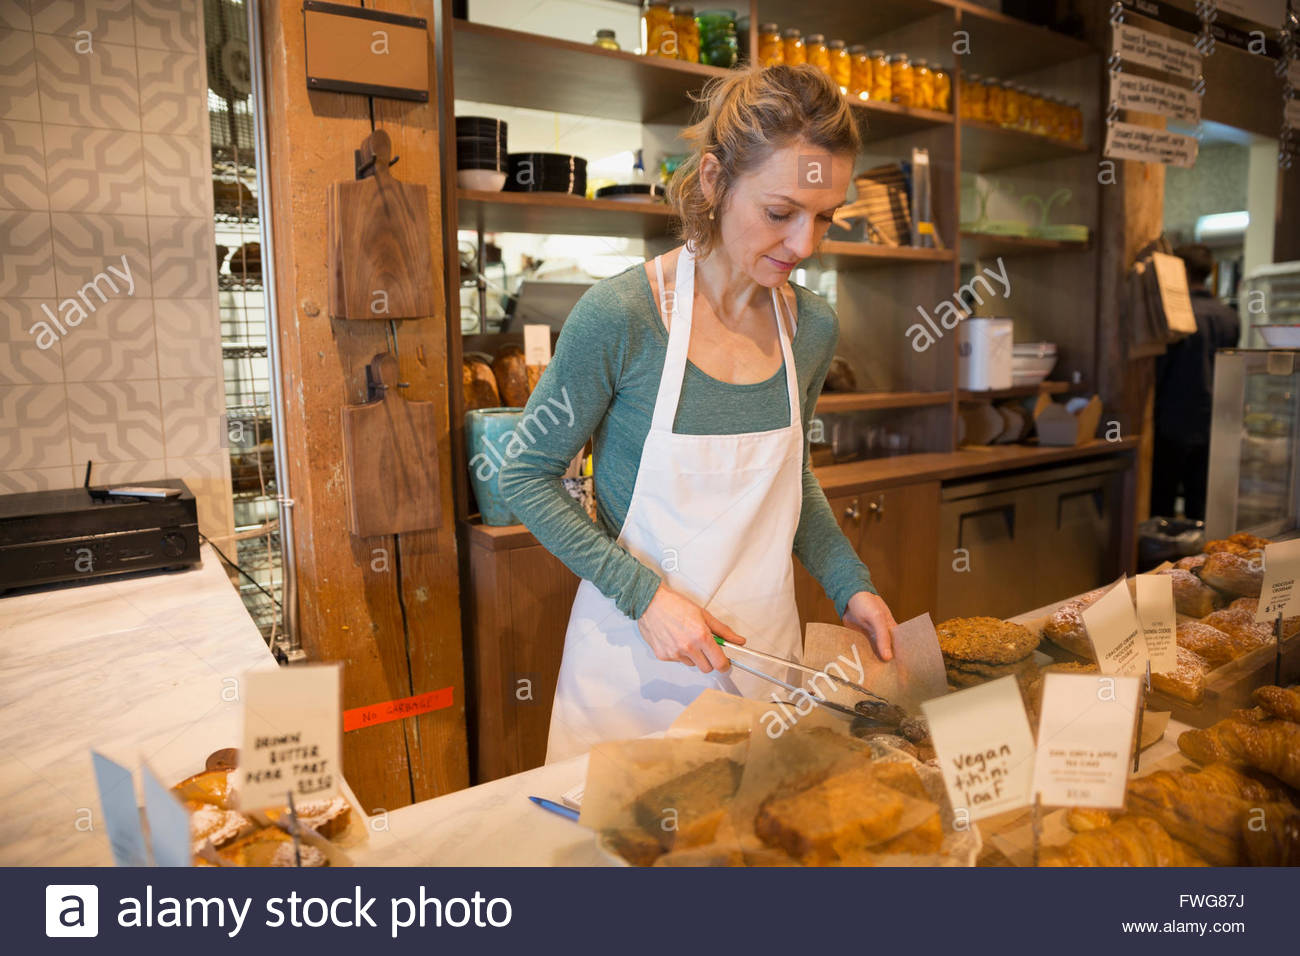 Bakery owner working behind counter - Stock Image